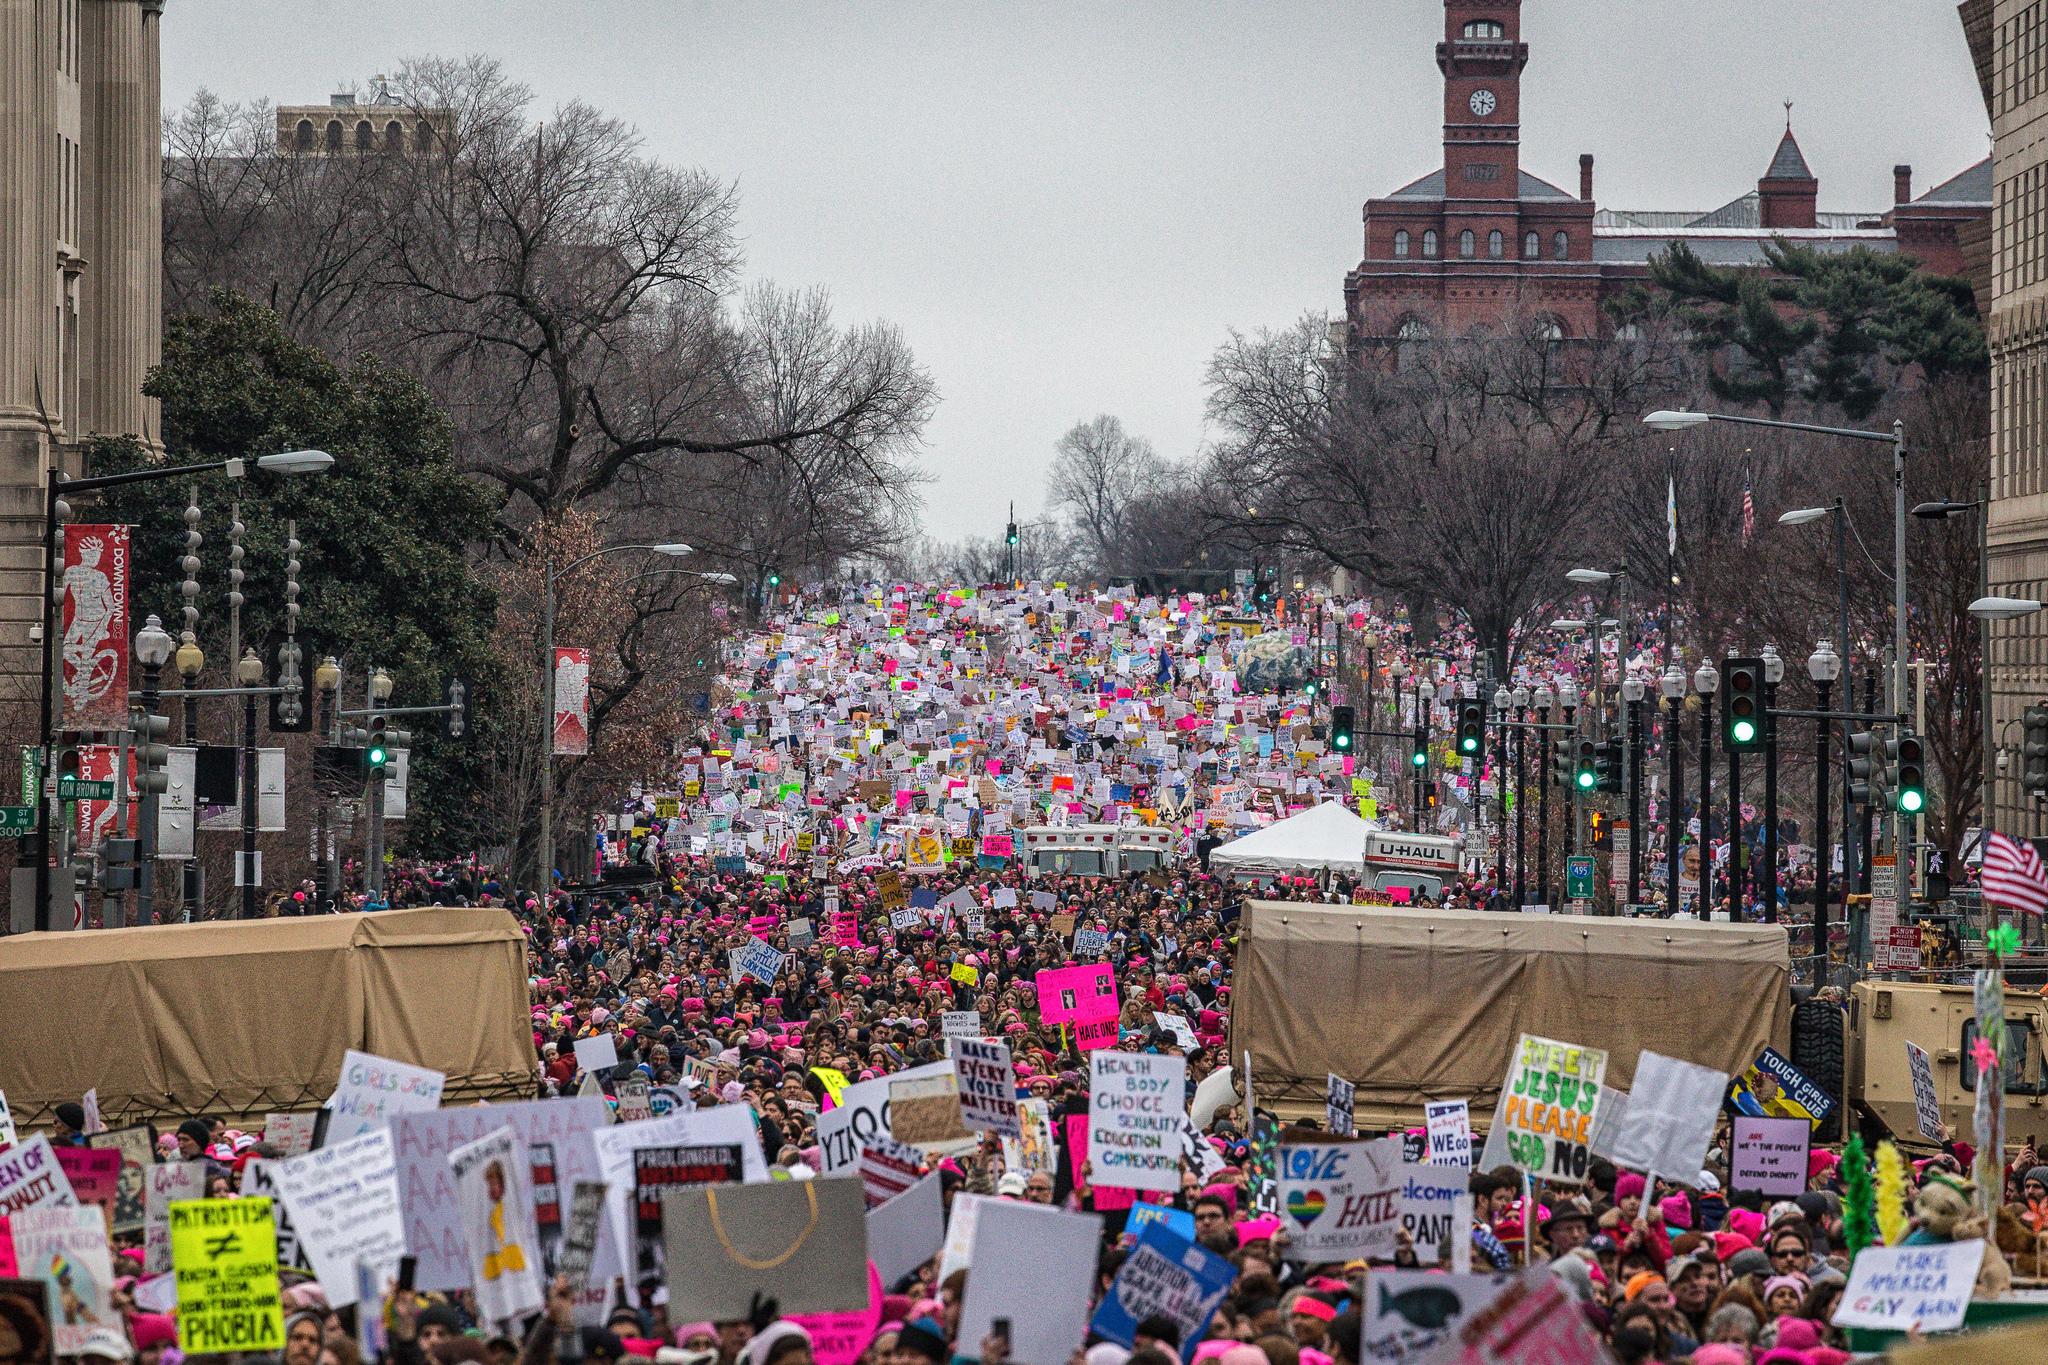 Thousands marched in the name of women's rights and a list of other major causes on Jan. 21, 2017 in Washington D.C., where an estimated crowd size of 485,000 people or more gathered. (Photo by Mobilus In Mobili/Flickr User)